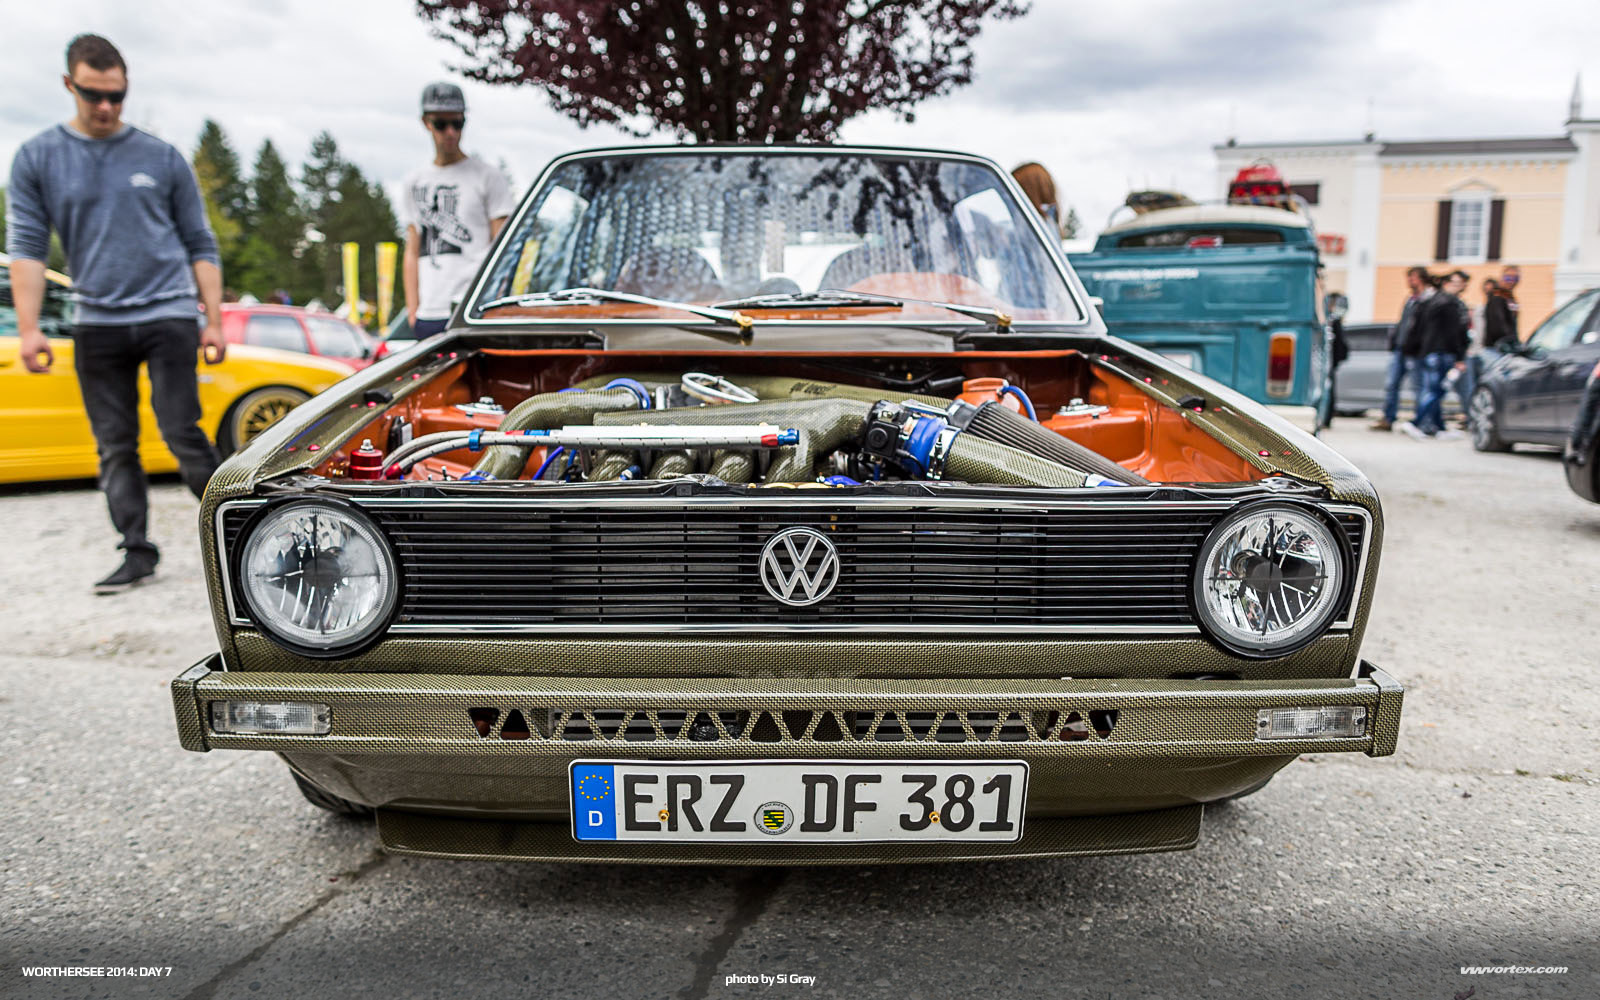 2014-Worthersee-Day-7-Si-Gray-997